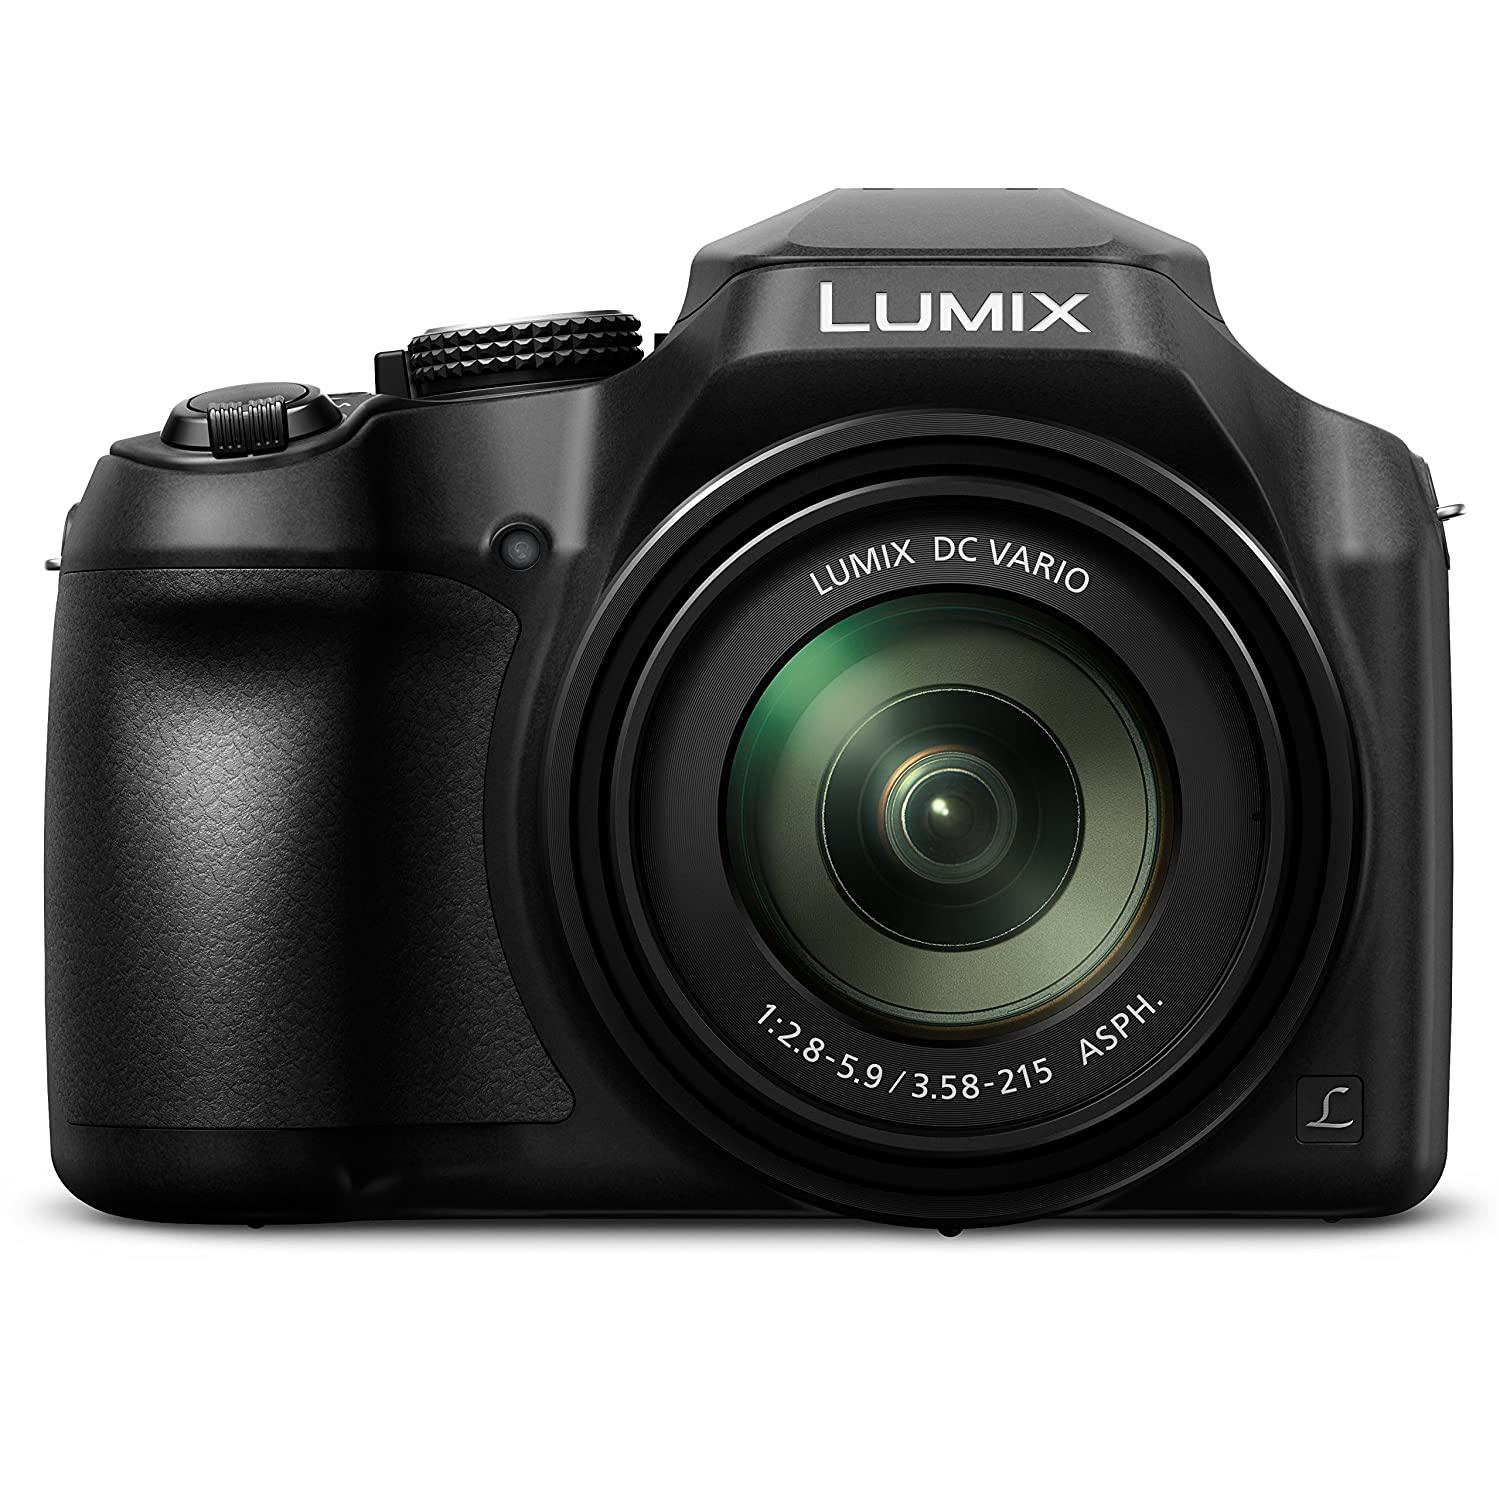 Panasonic Lumix FZ80 Review